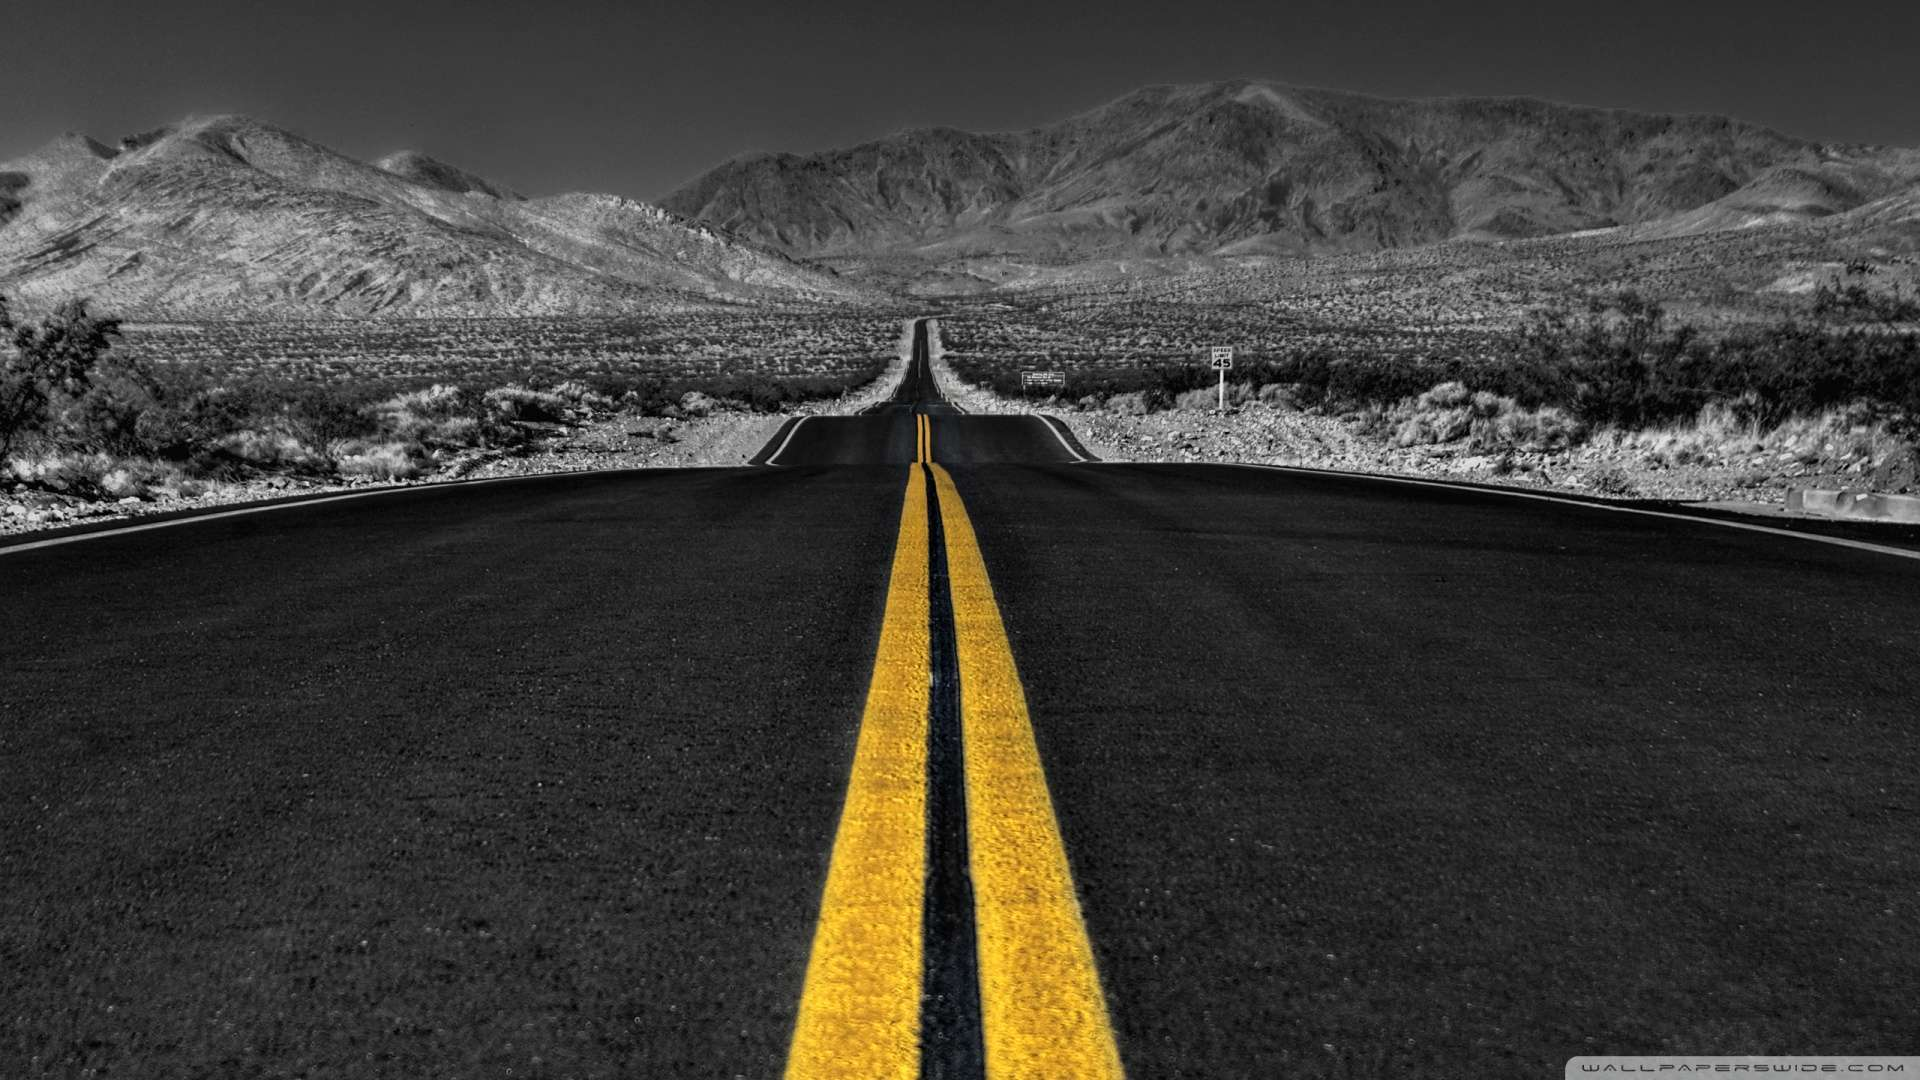 Hd wallpaper 1080p - Wallpaper Long Desert Road Black And White Wallpaper 1080p Hd Upload